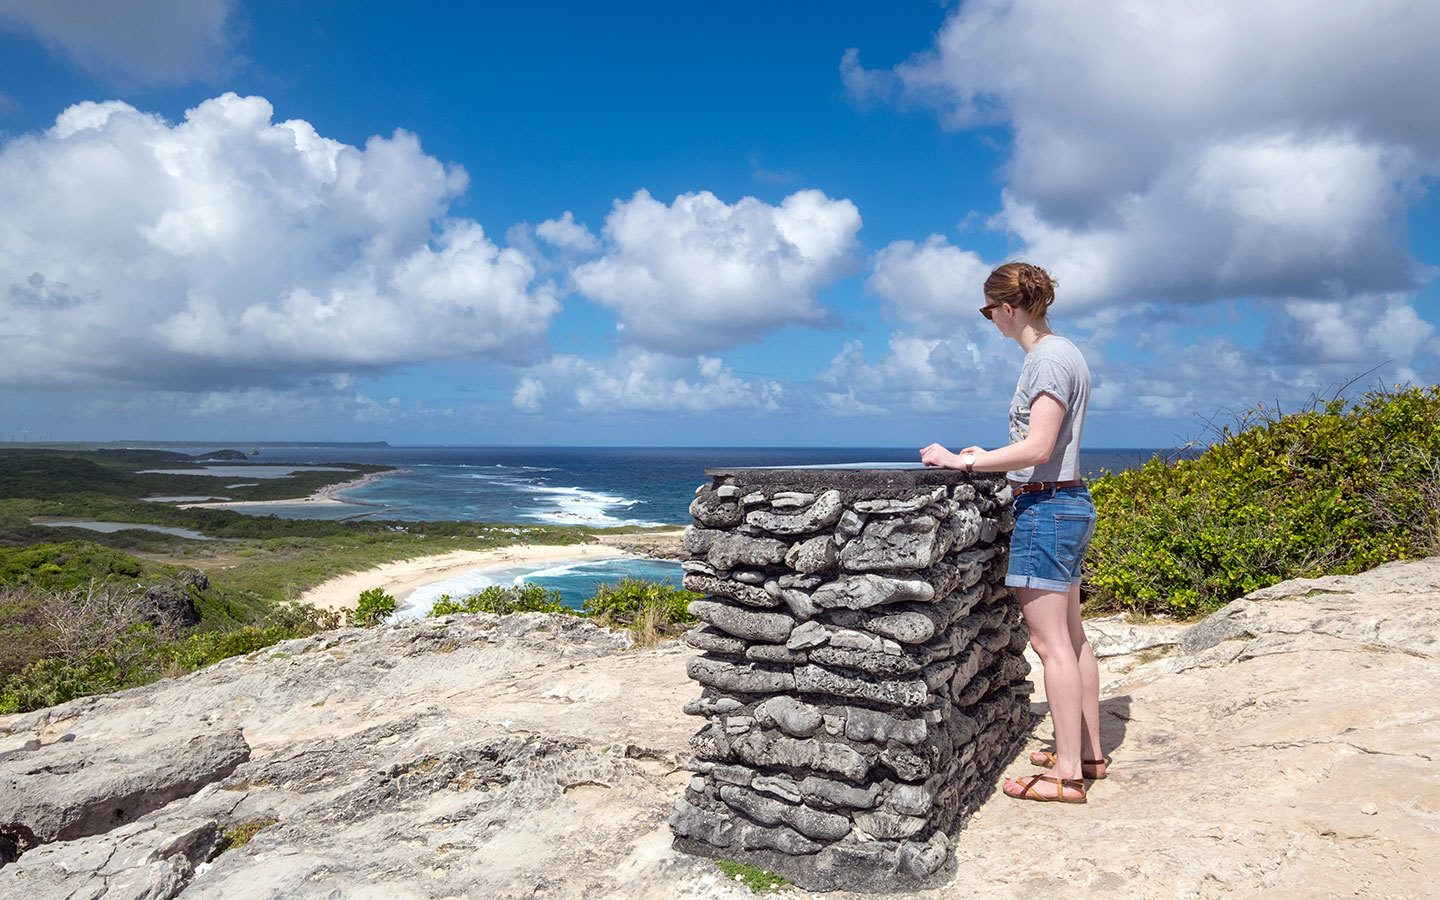 Views from the Pointe des Châteaux in Guadeloupe